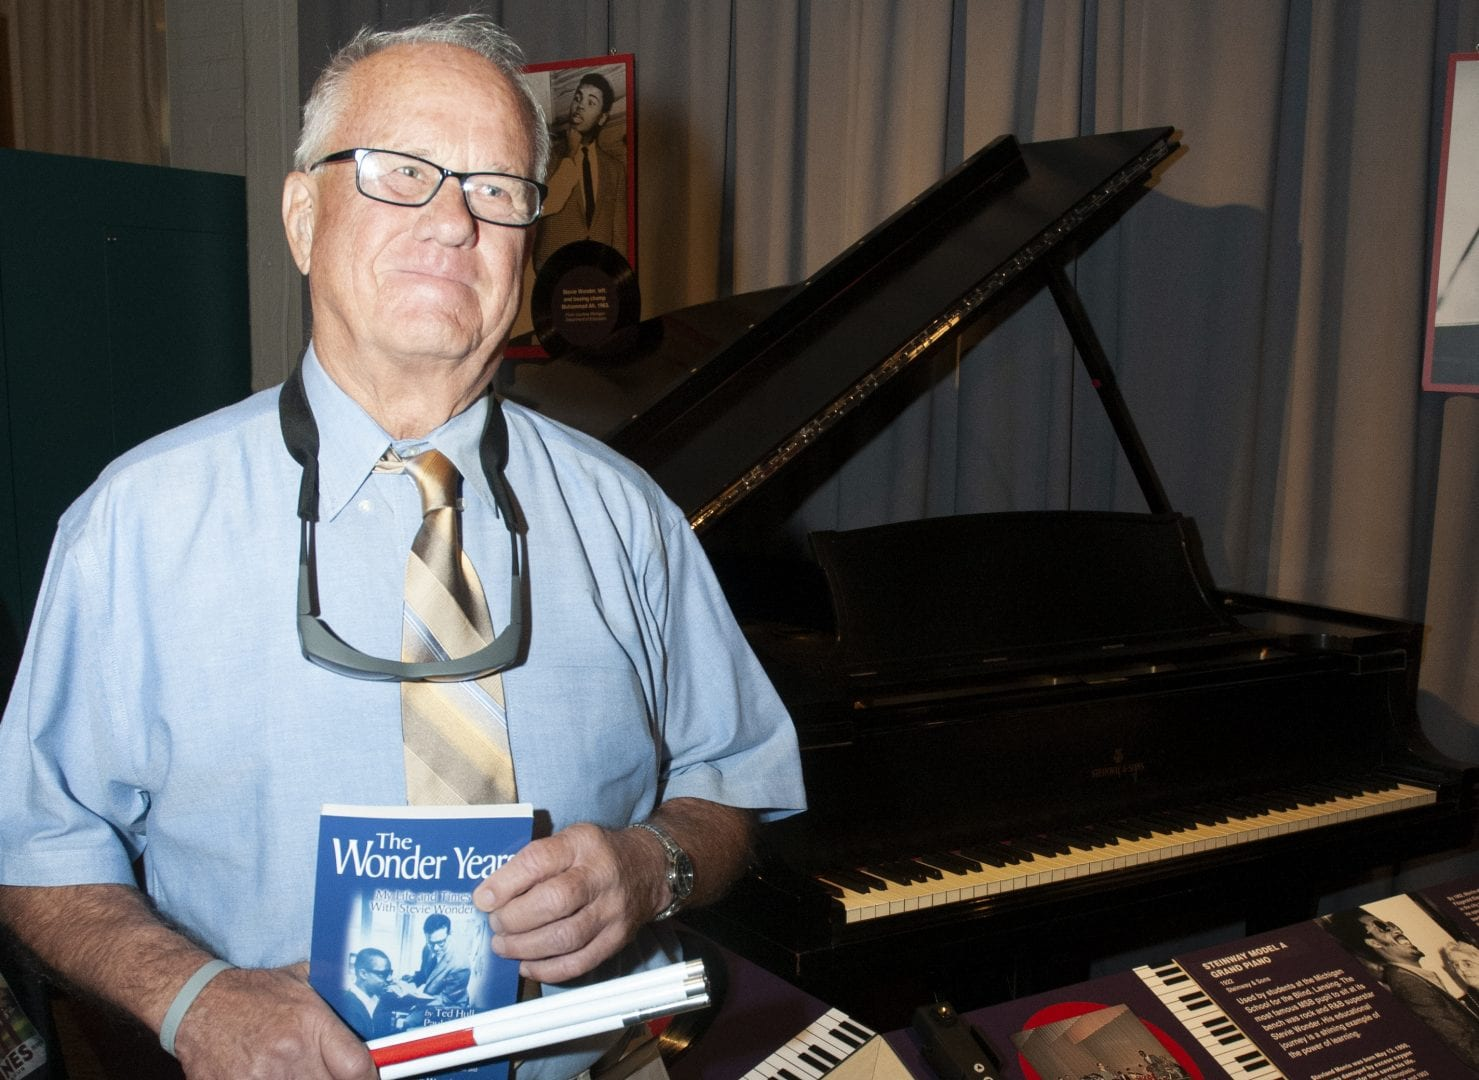 photo of a man standing with a folded white cane in front of a black piano on display in a museum